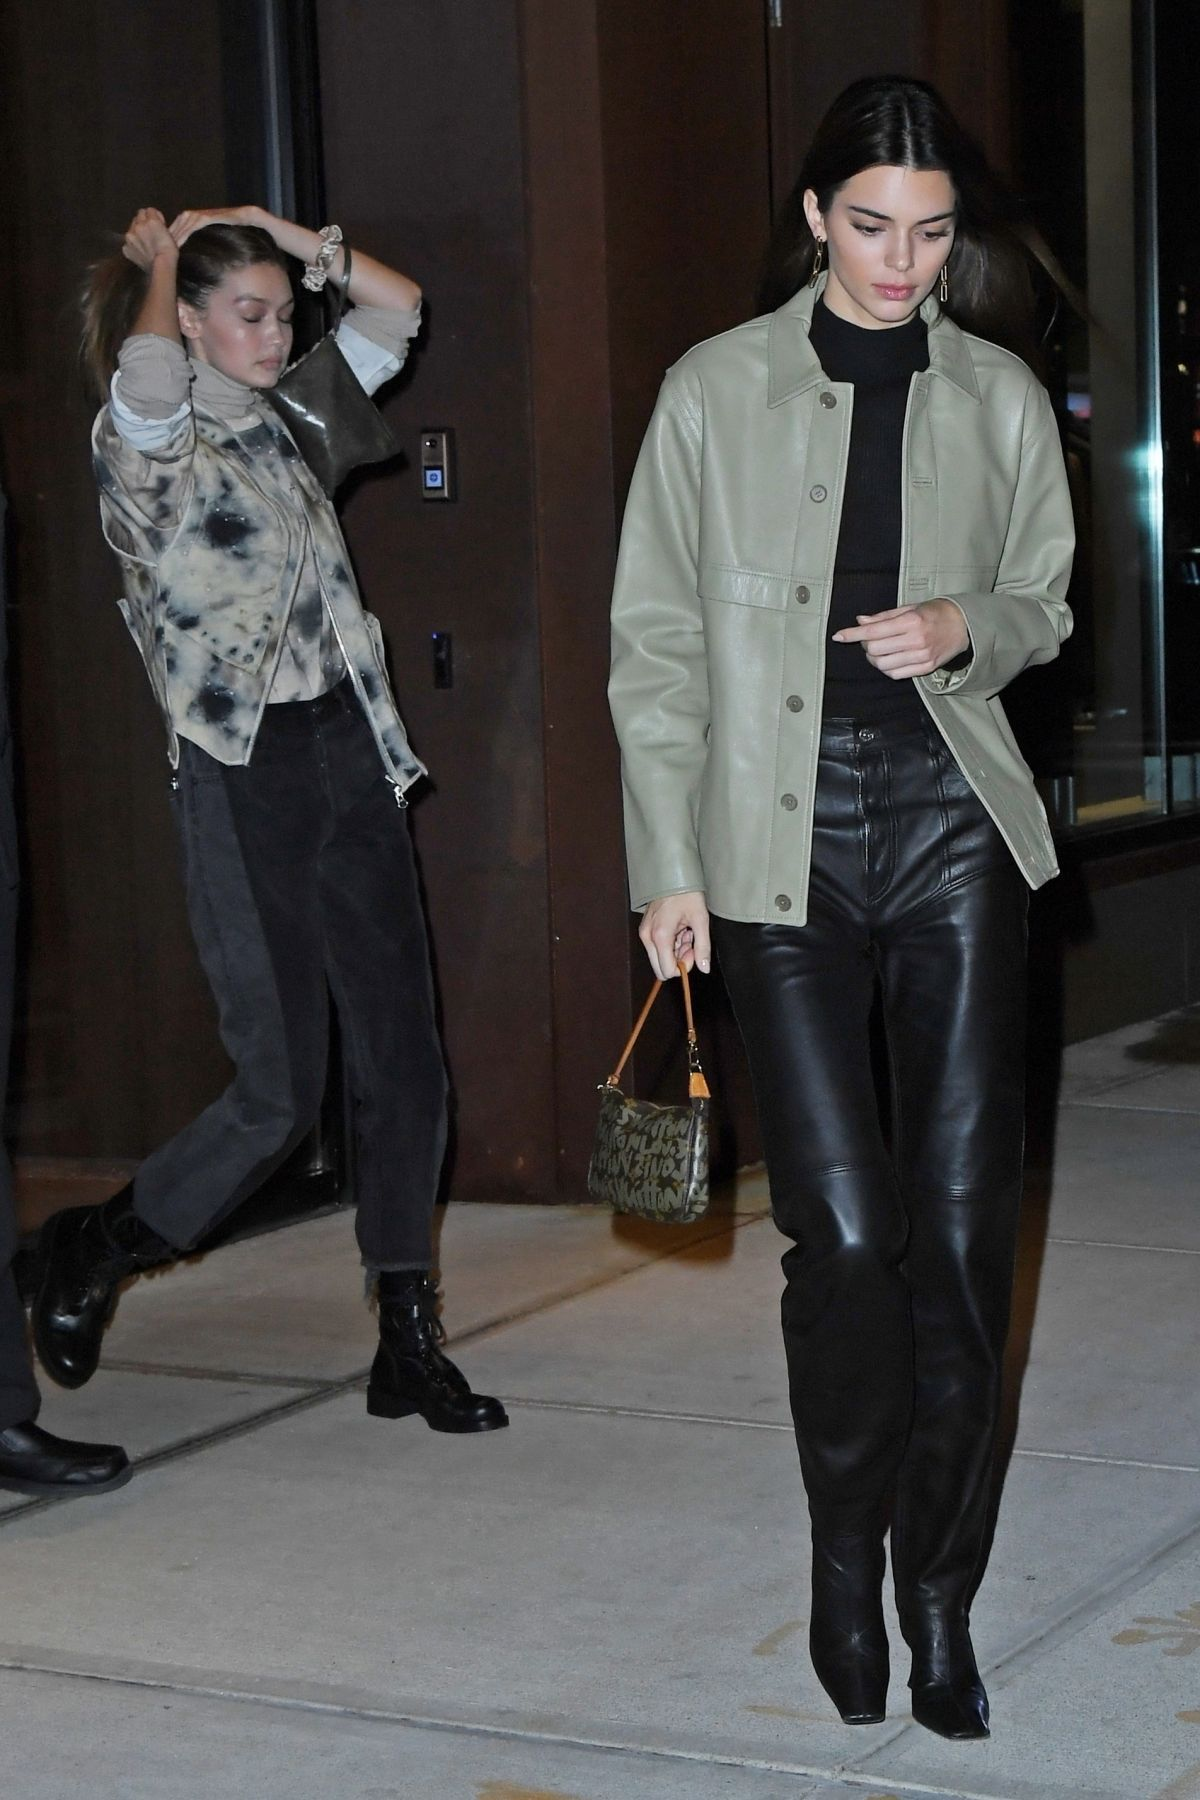 Pin by Noemine Guenov on Outfits | Kendall jenner outfits